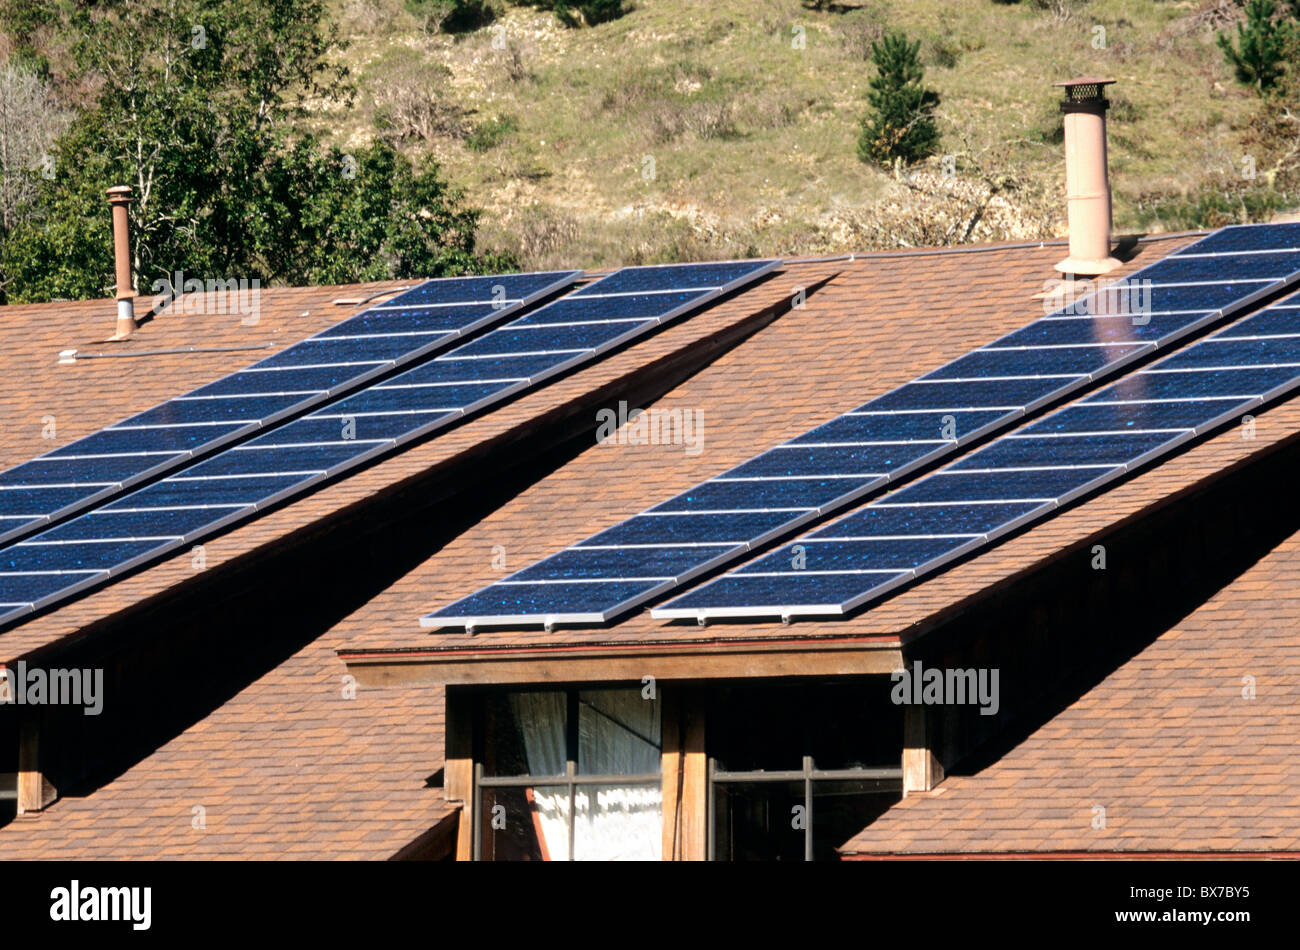 Solar Electric Panels on roof, - Stock Image